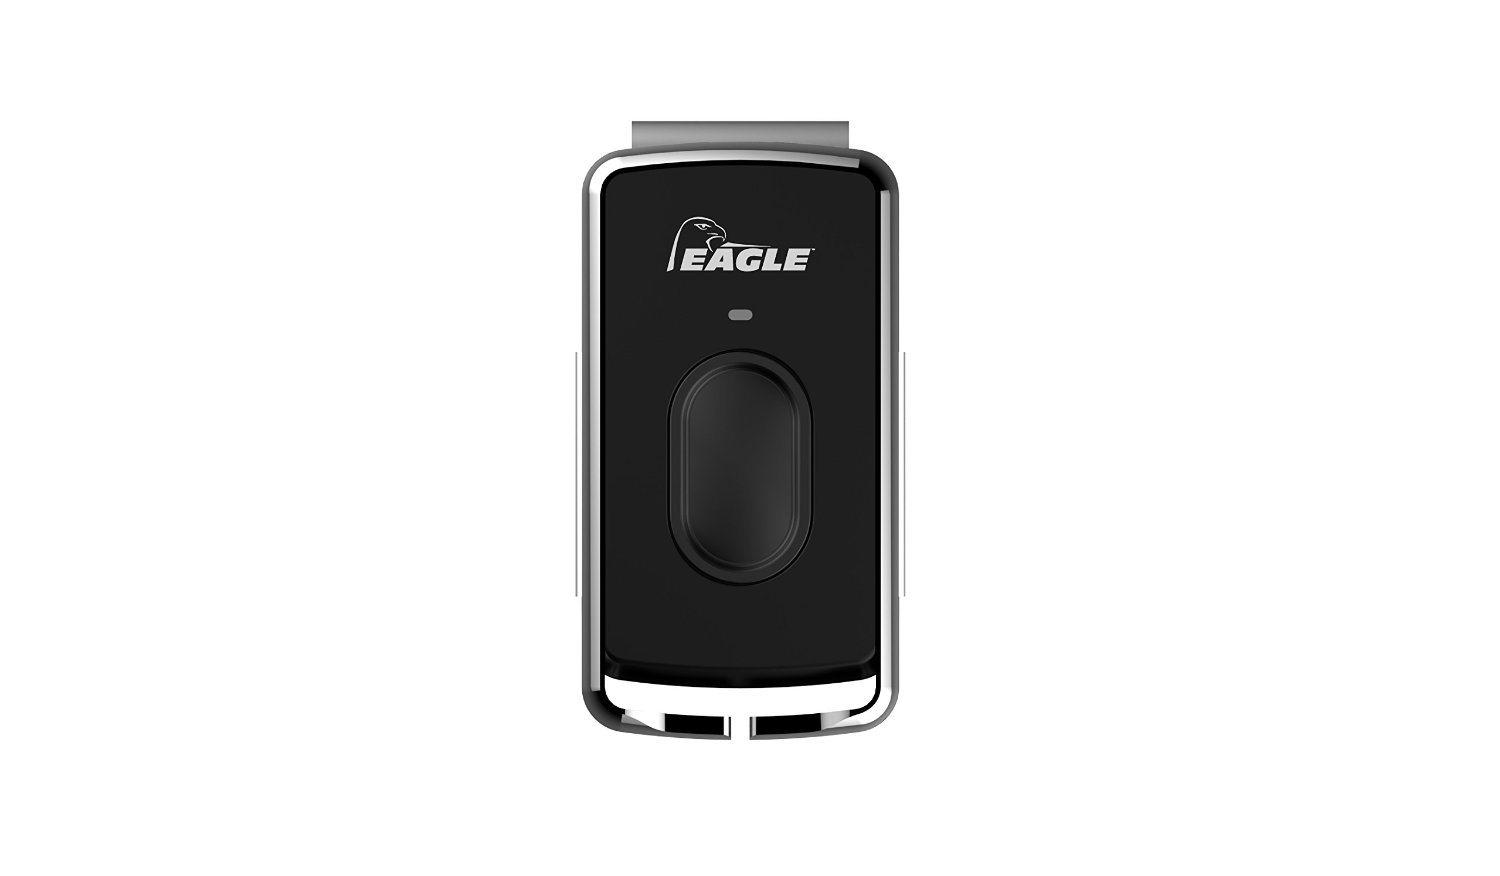 Eagle Eg642 Chrome Series 1 Button Visor Remote Transmitter